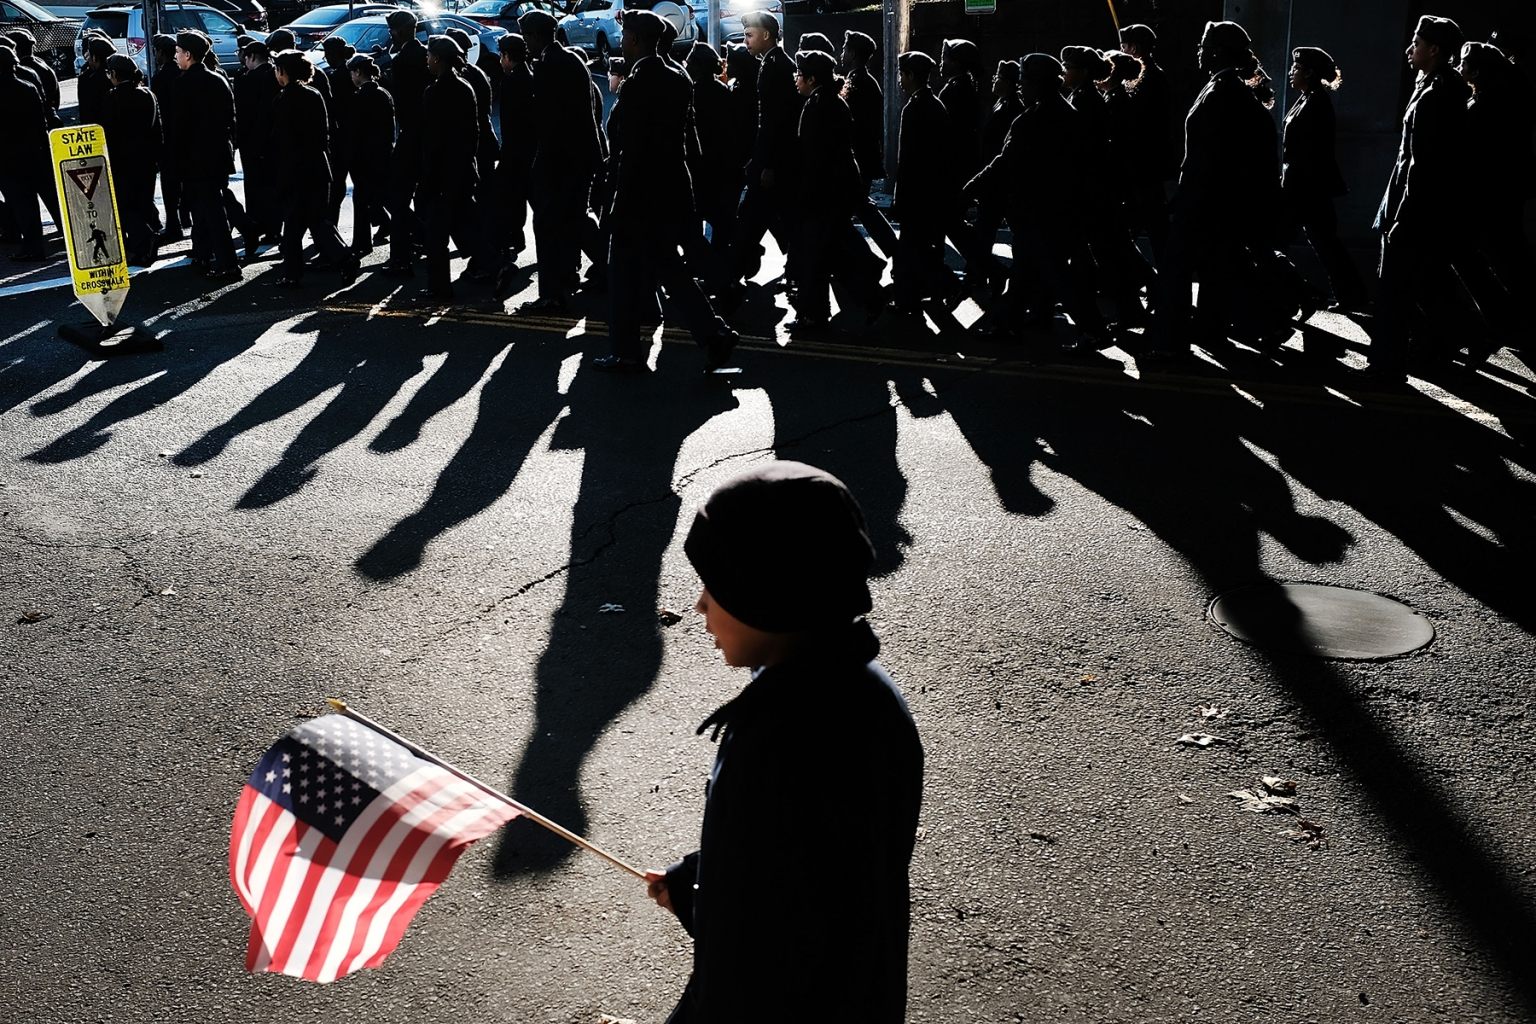 A child holds an American Flag as the Veterans Day Parade passes in Milford, Connecticut, on Nov. 11. This year's Veterans Day had added significance as it marks the 100th anniversary of the end of World War I. Spencer Platt/Getty Images